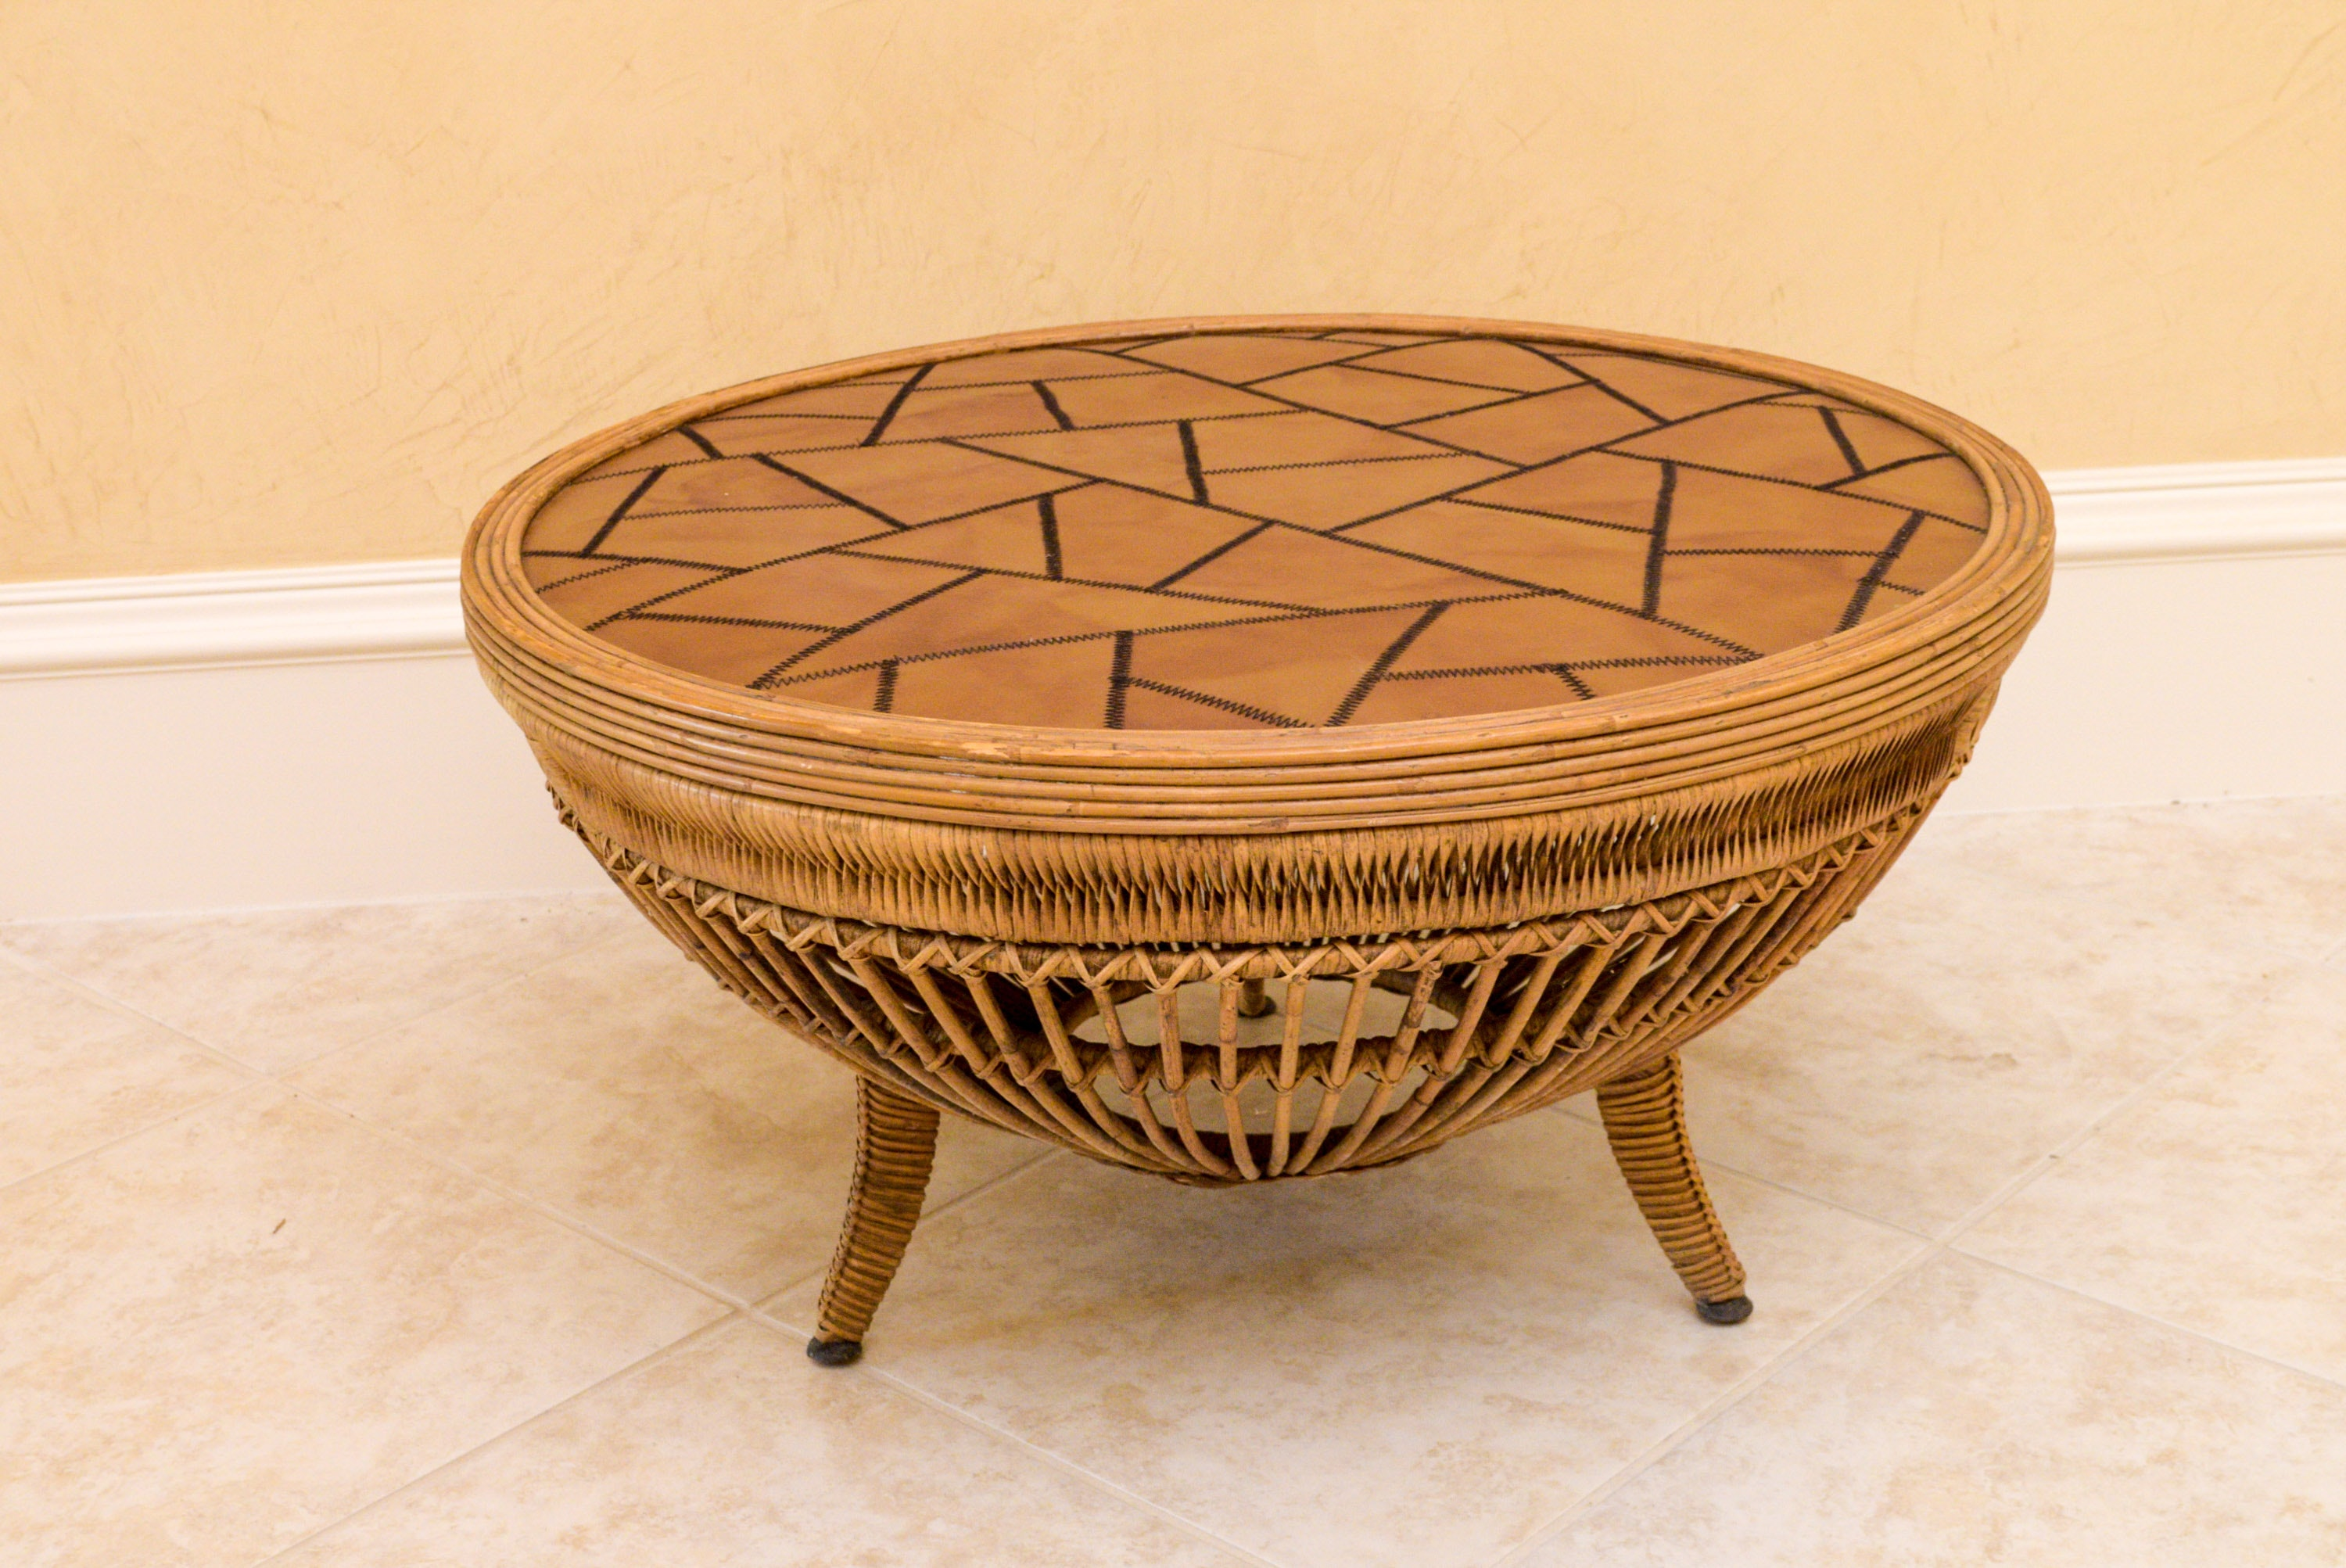 Drum Table with Leather Top and Rattan Base